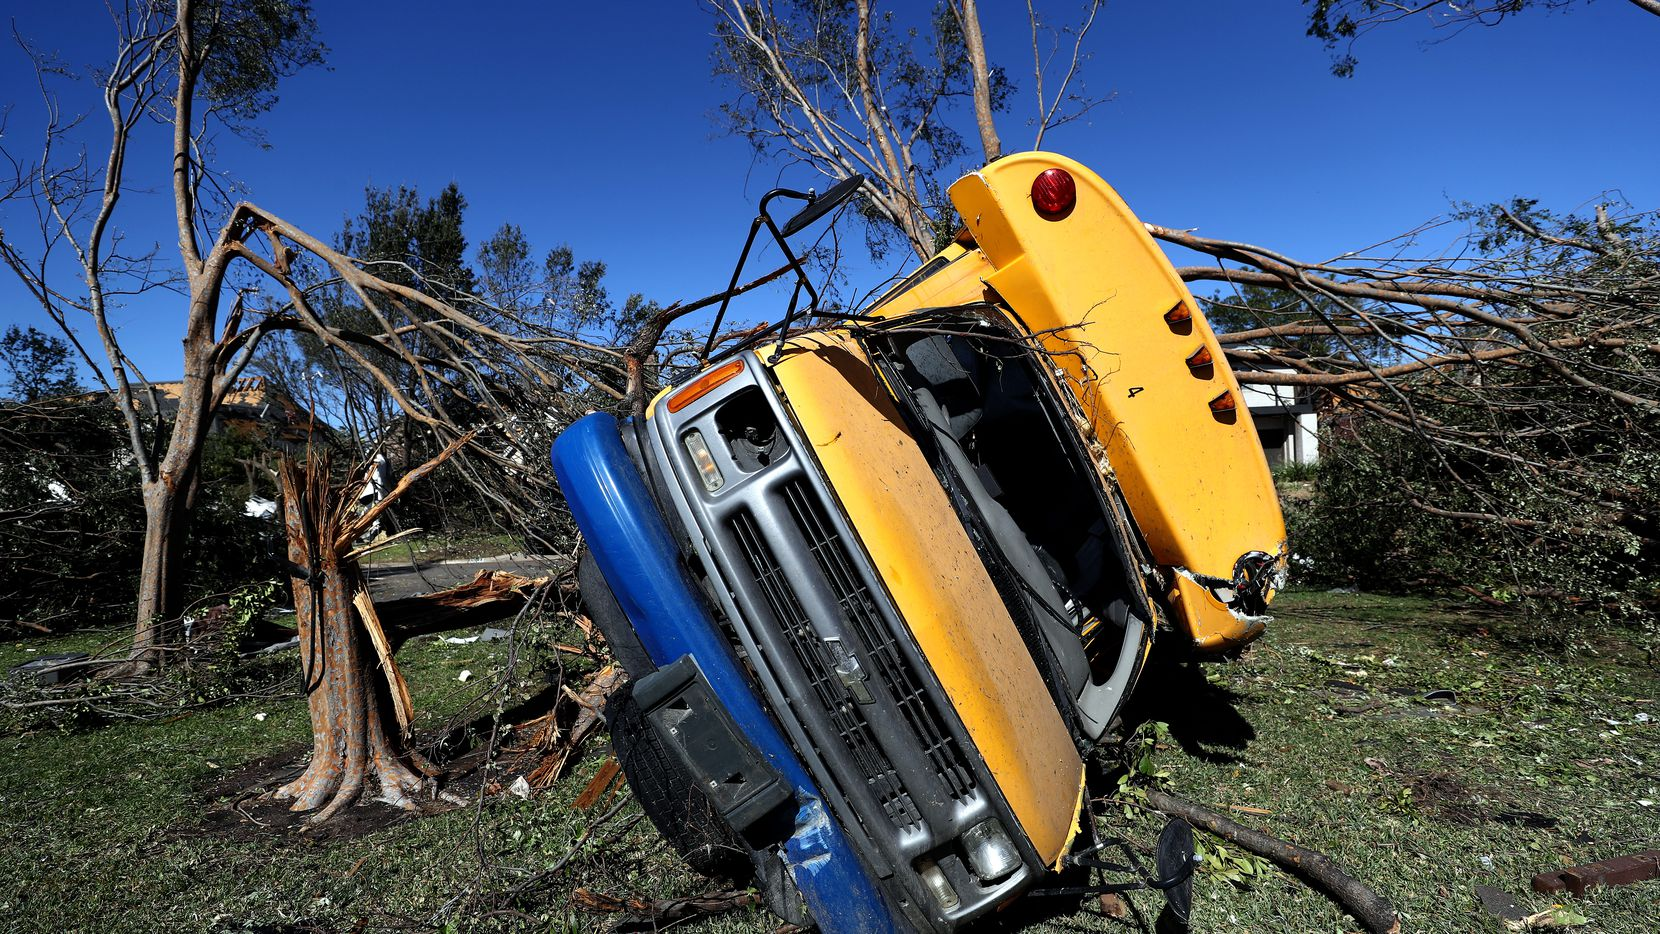 DALLAS, TEXAS - OCTOBER 21: A St Mark's School of Texas school bus lies on top of a tree on October 21, 2019 in Dallas, Texas.  A tornado struck Sunday night causing major damage to homes, businesses and schools but no deaths or serious injuries have been reported. (Photo by Ronald Martinez/Getty Images)